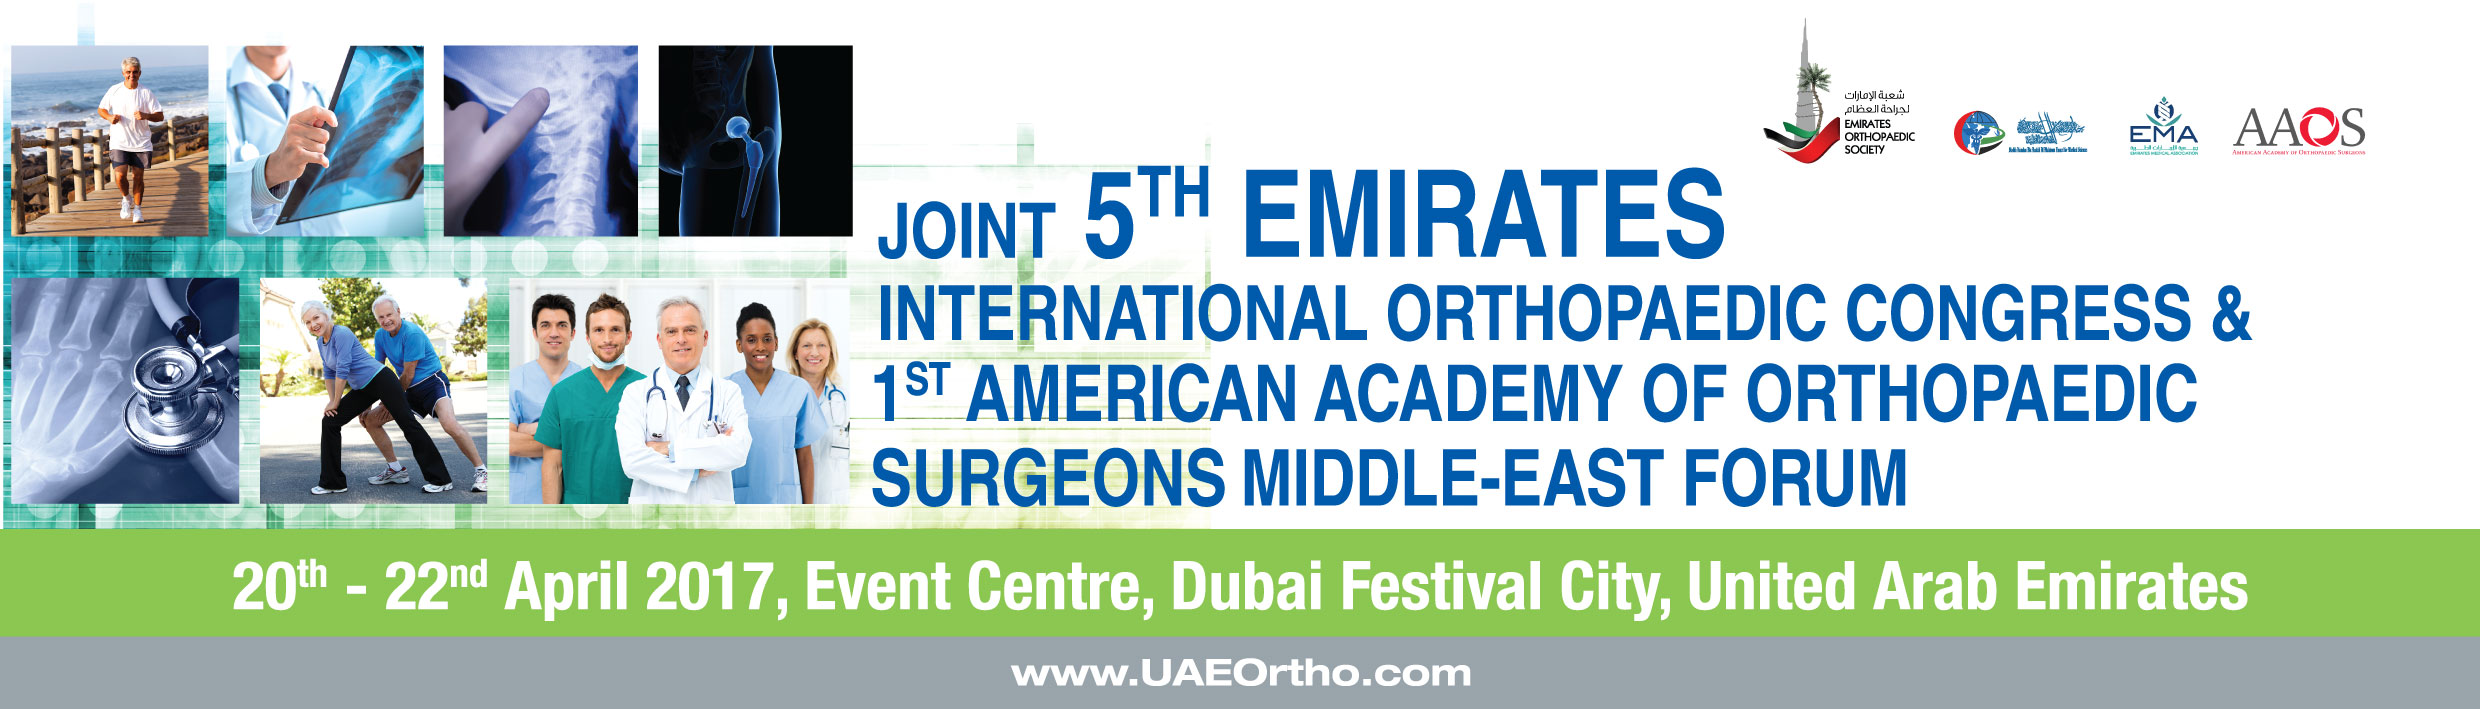 Joint 5th Emirates International Orthopaedic Congress & 1st American Academy of Orthopaedic Surgeons Middle-East Forum, April 20-22, 2017